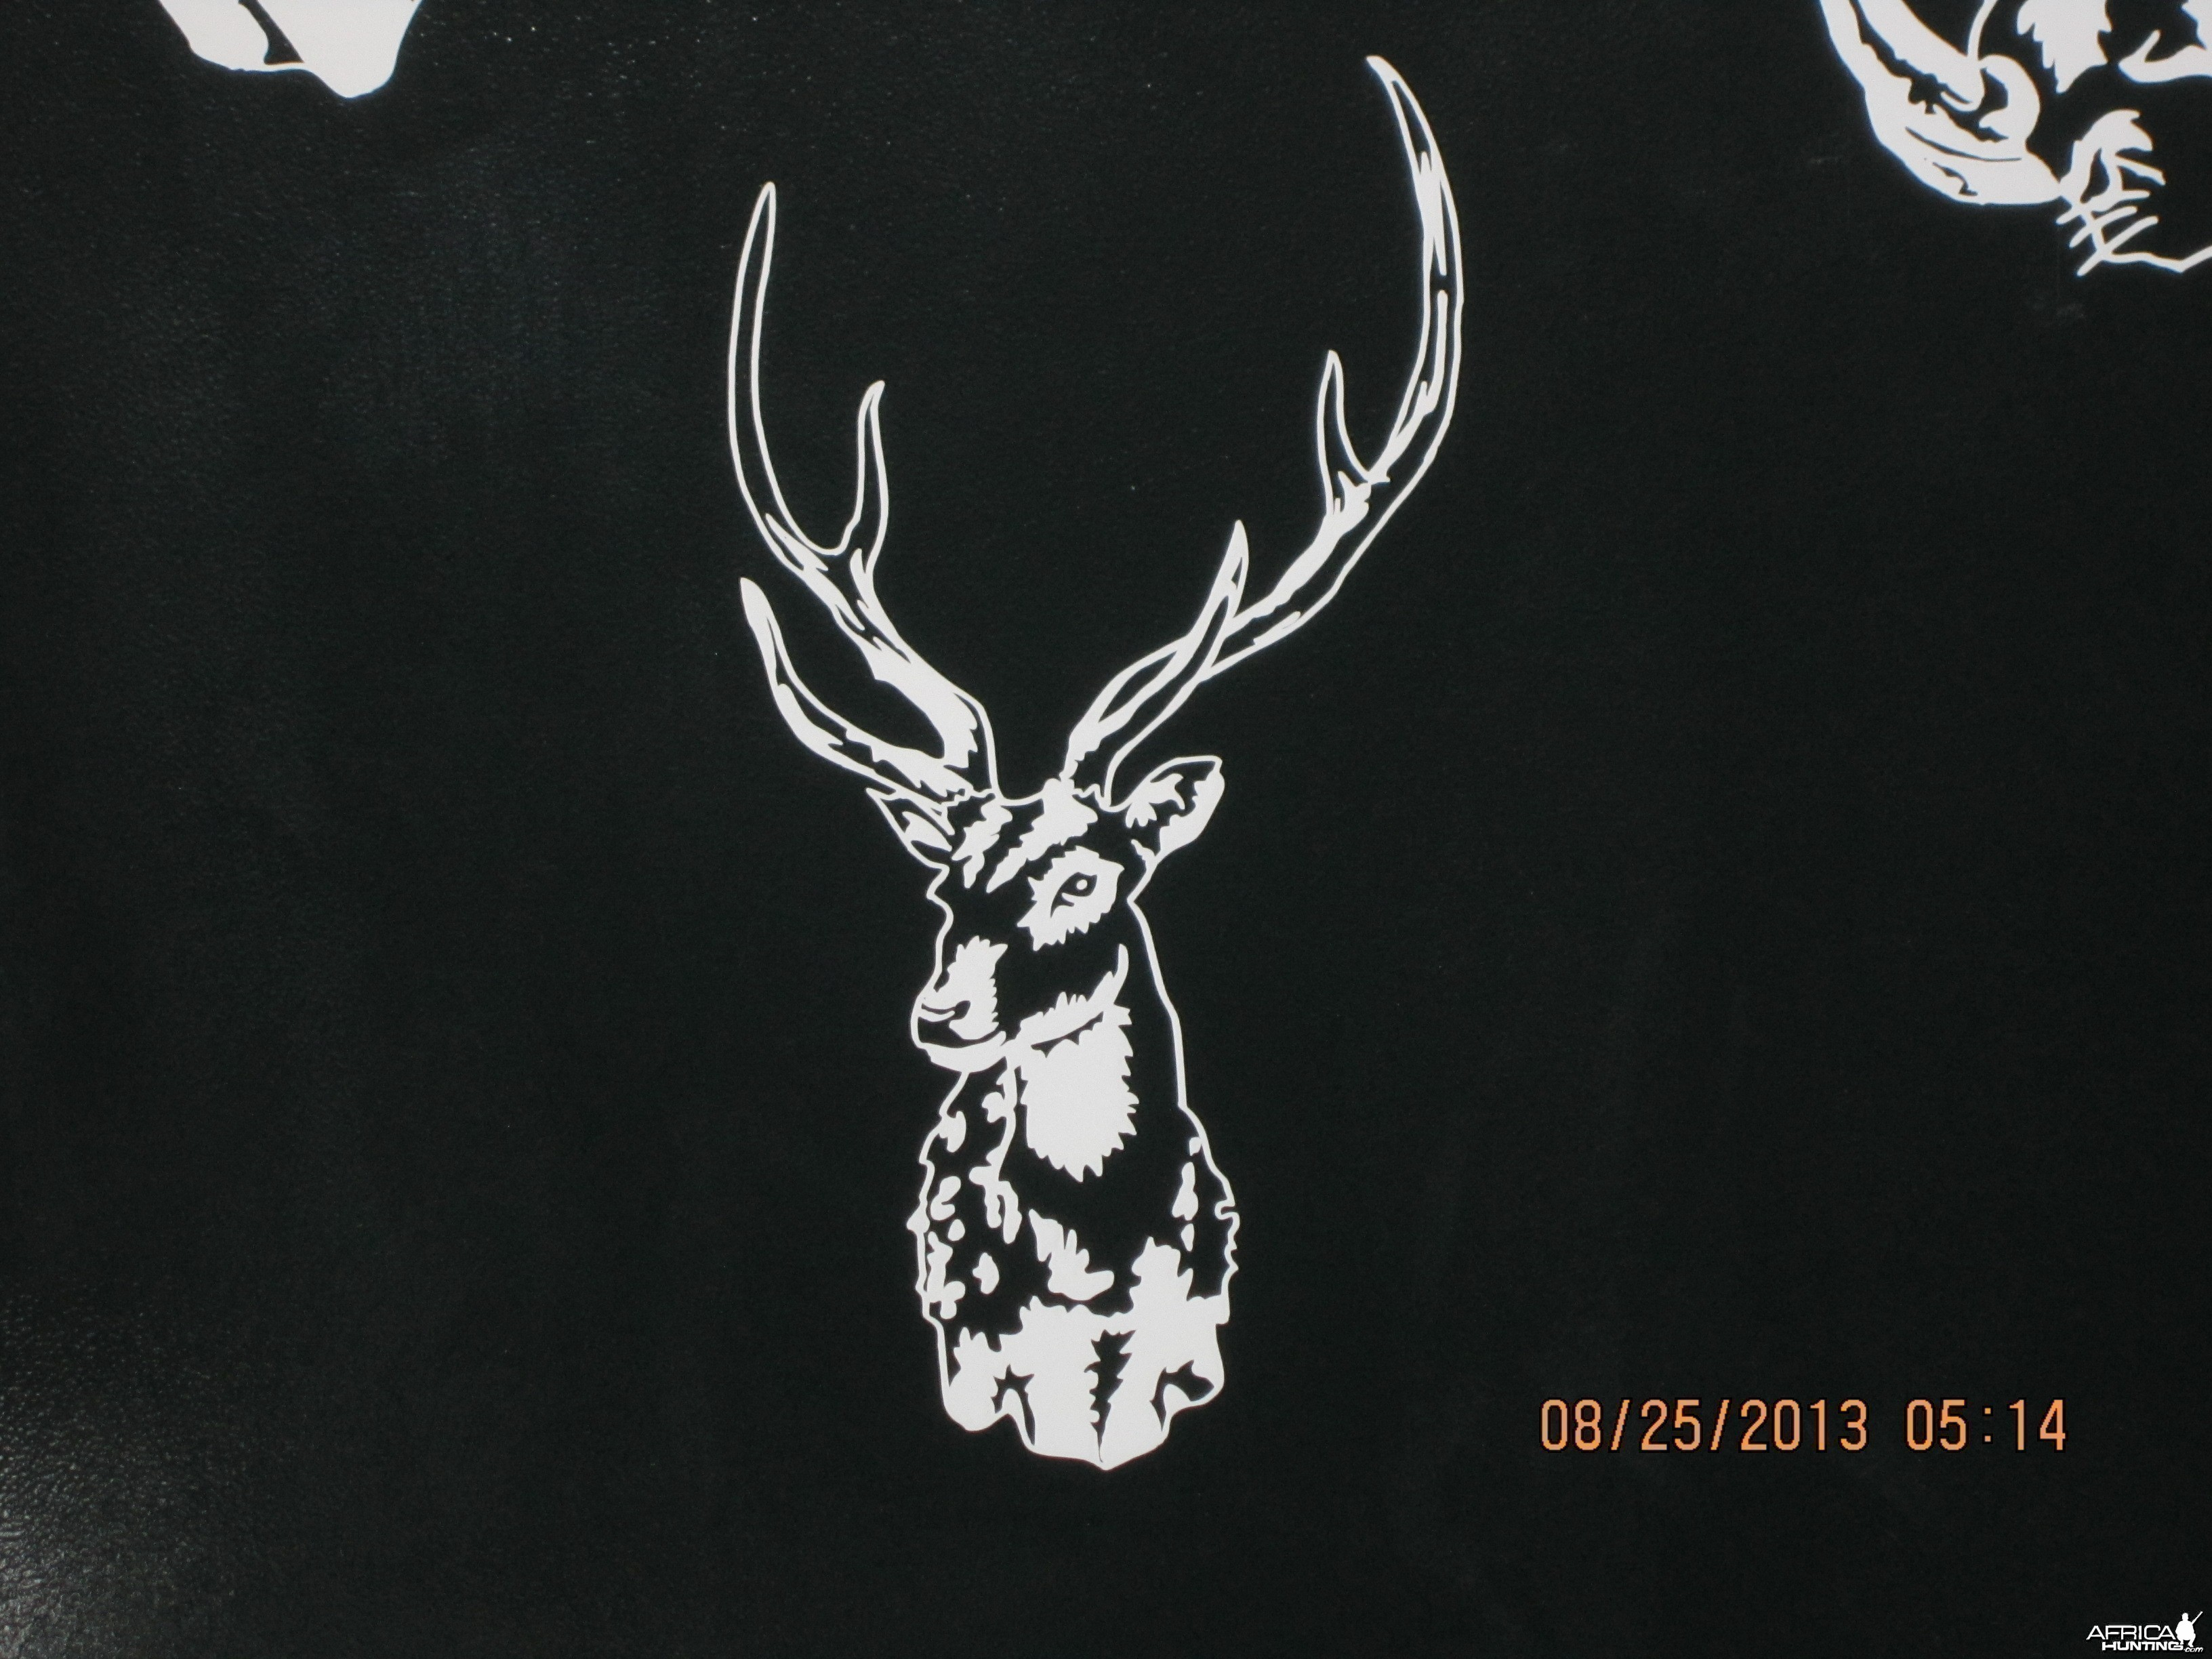 Axis Deer Decal Stickers